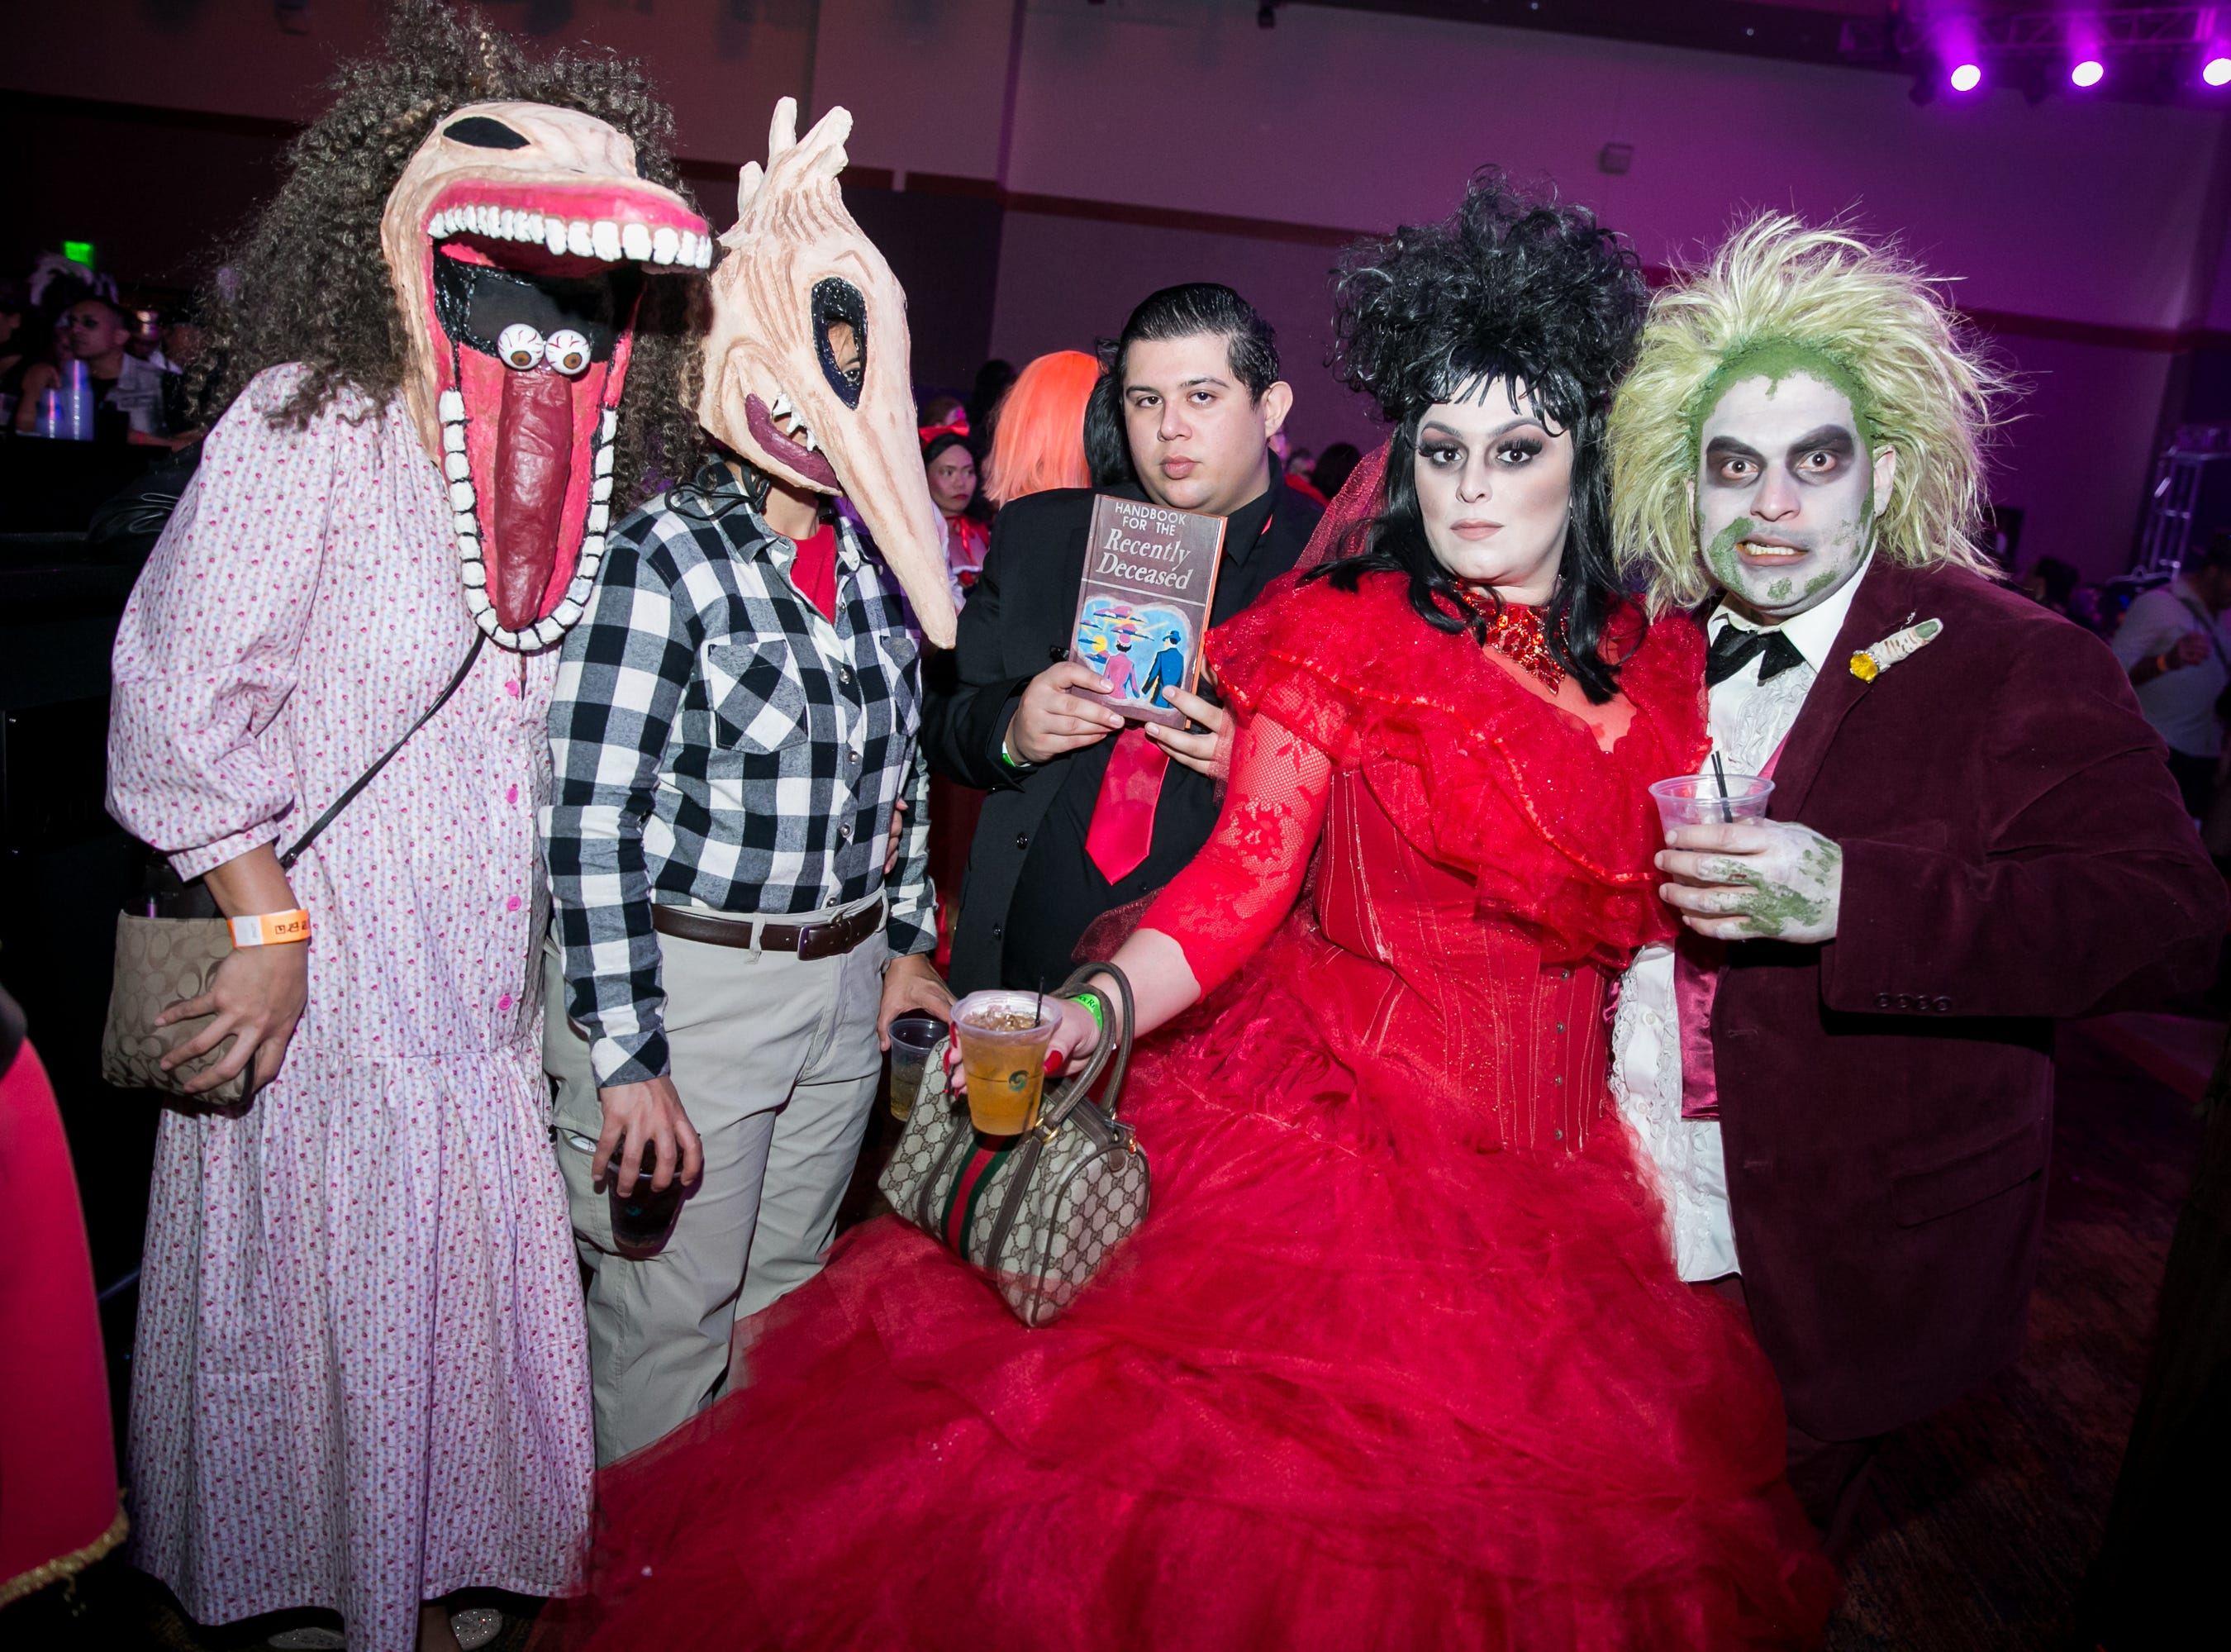 The Beetlejuice crew looked great during Wicked Ball at Talking Stick Resort on Saturday, October 27, 2018.